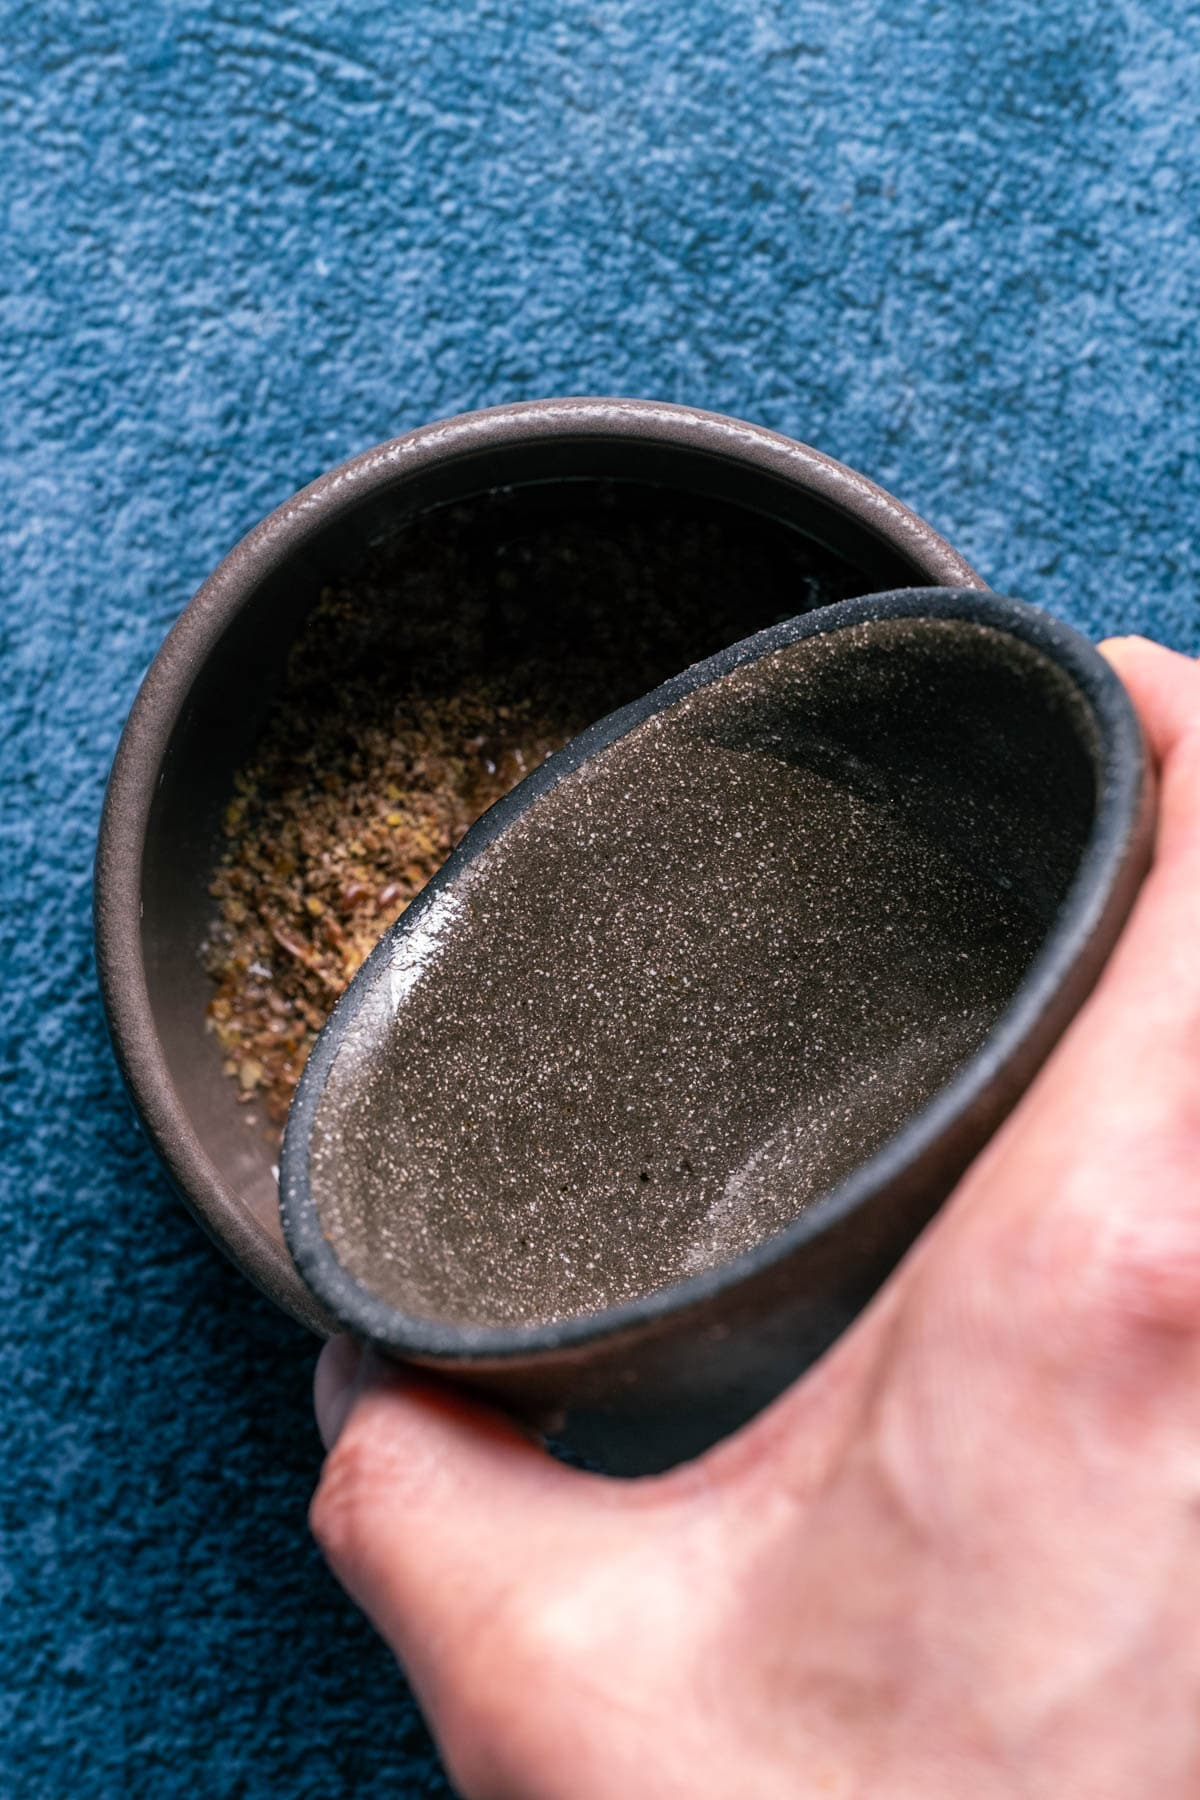 Photo of adding hot water to the ground flaxseeds in a bowl.